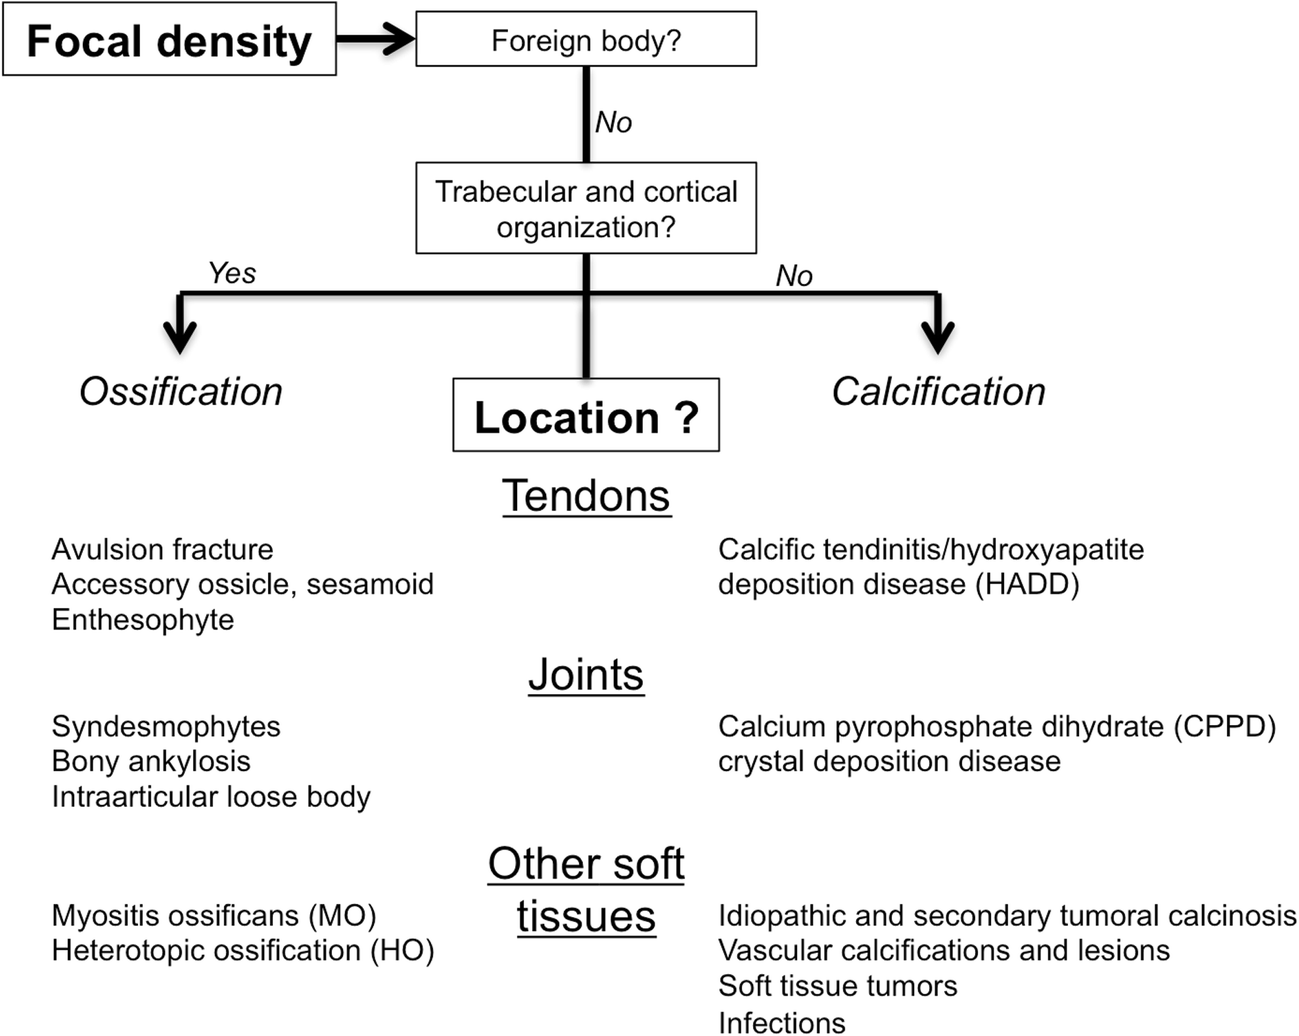 Radiological identification and analysis of soft tissue